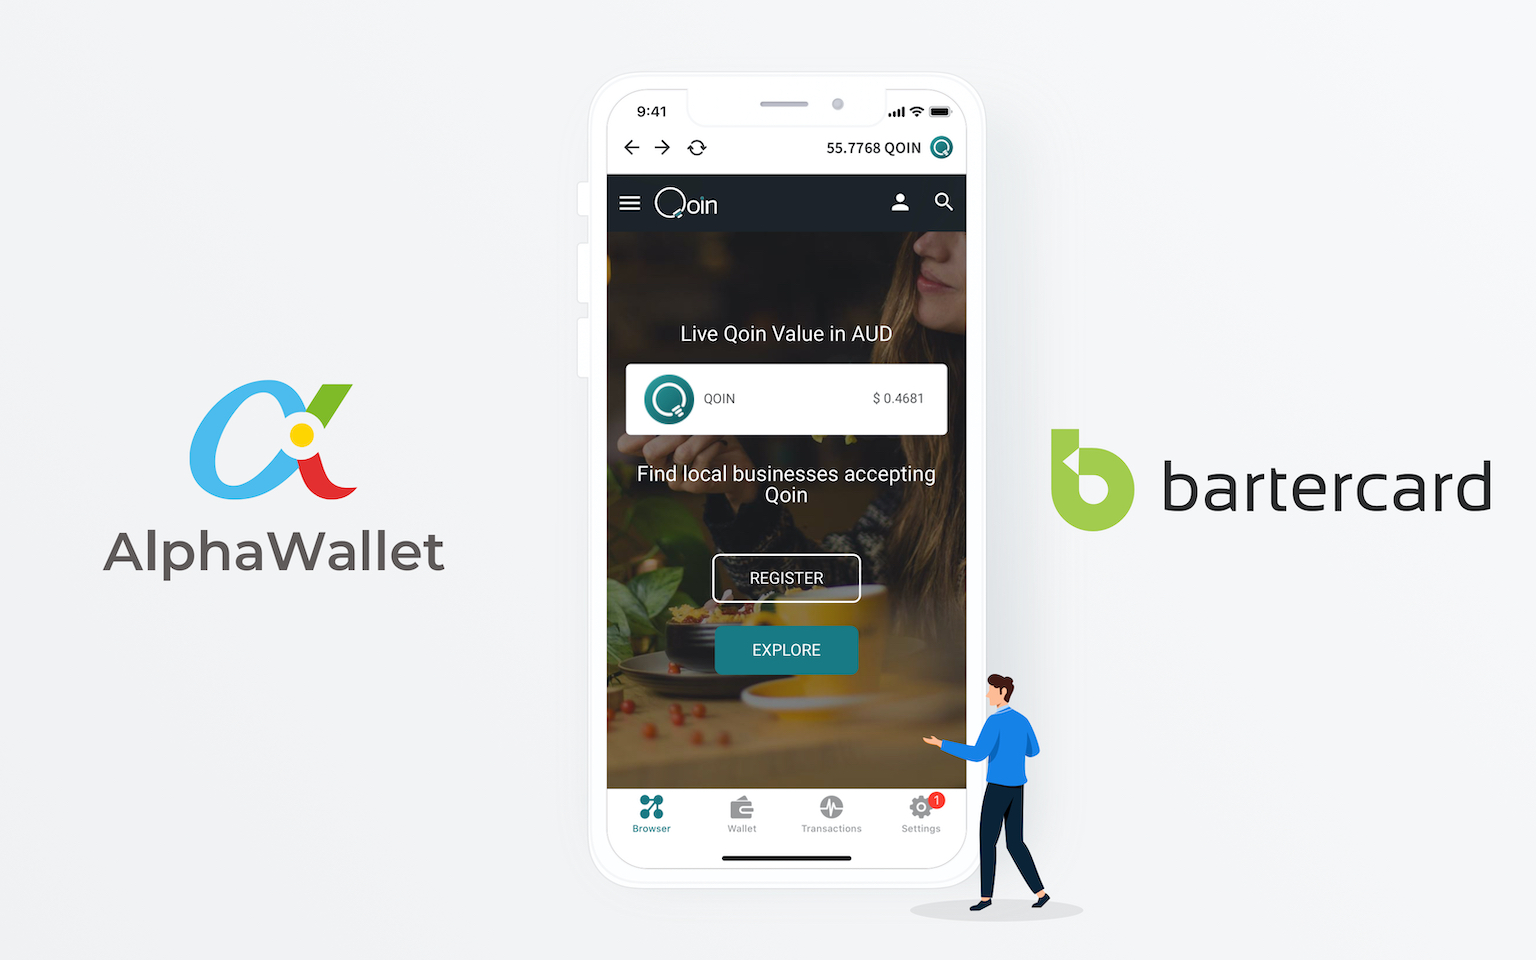 AlphaWallet Announces Partnership with Bartercard